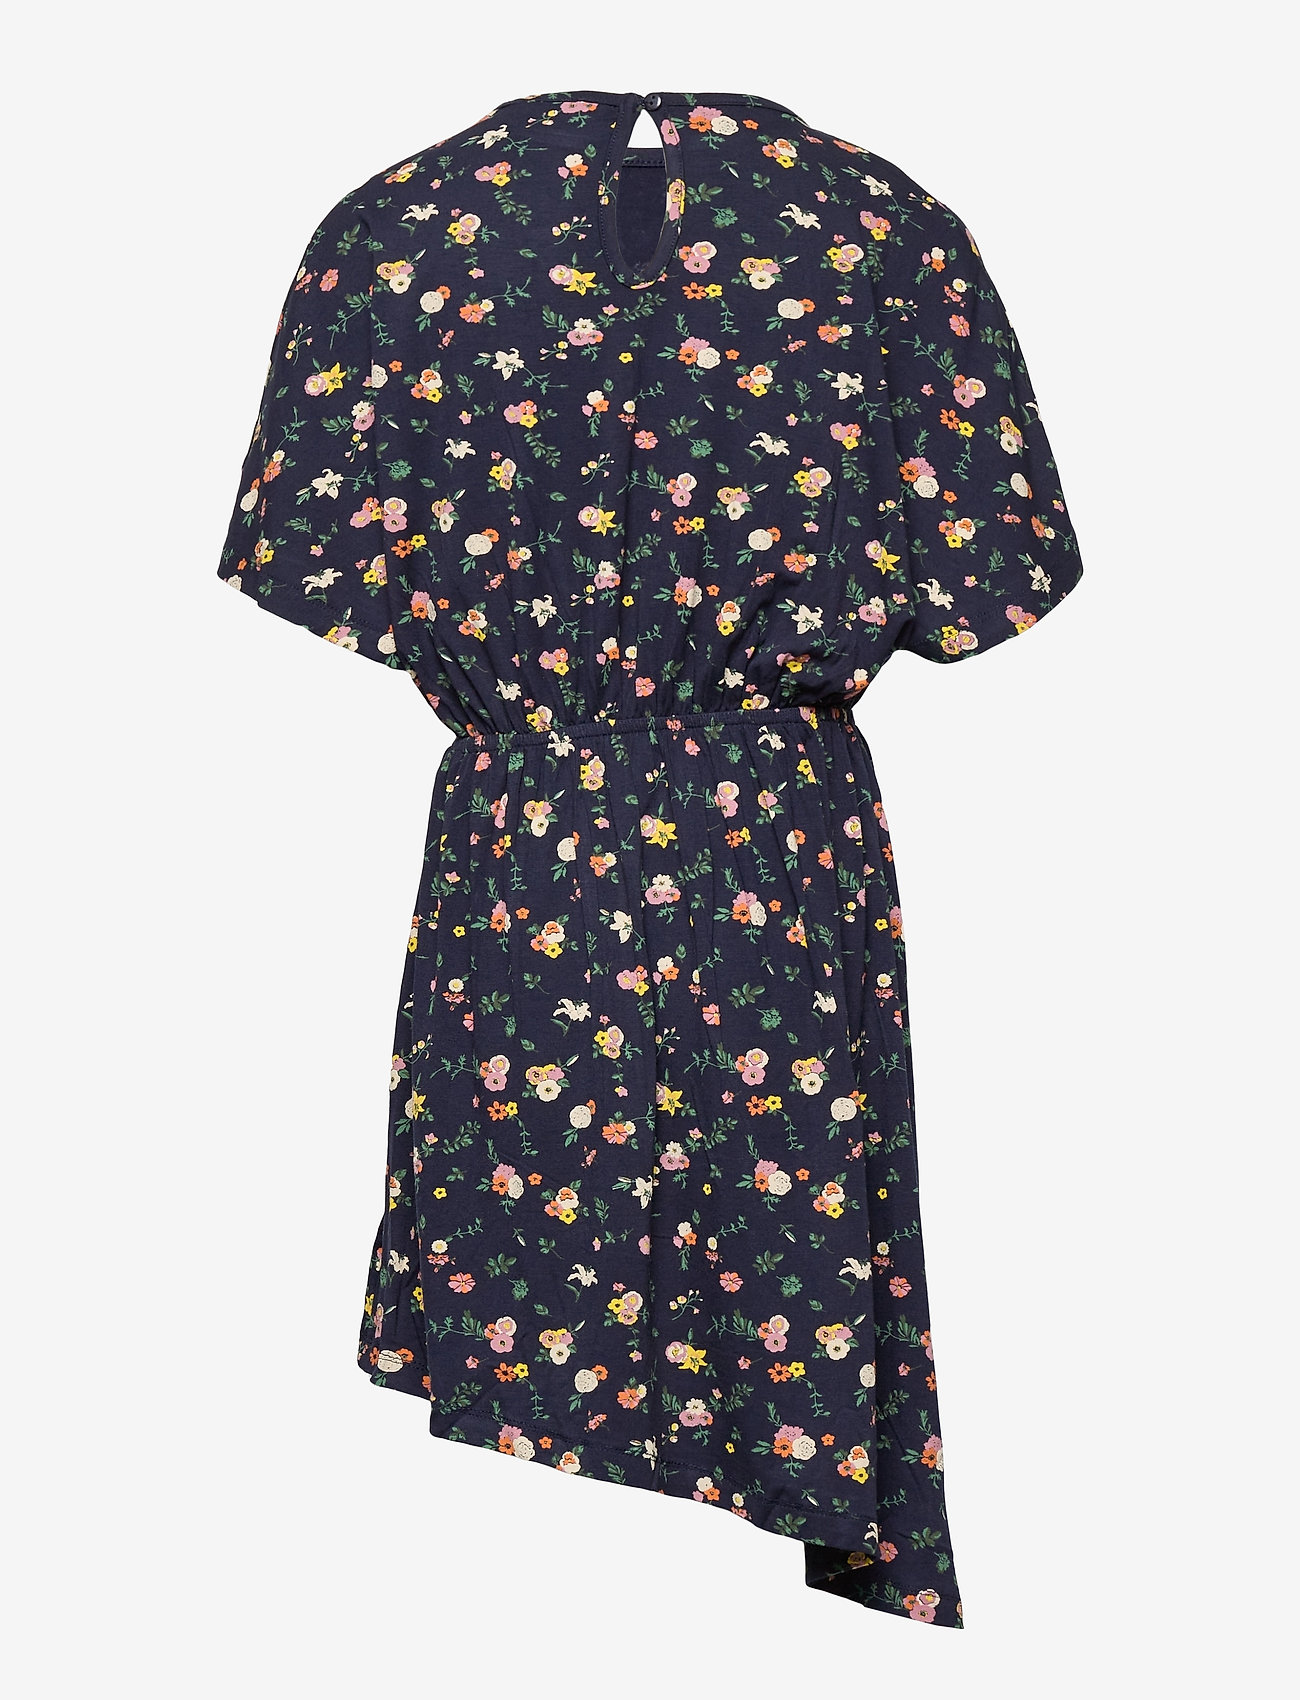 The New - THELMA S_S DRESS - kleider - floral aop - 1